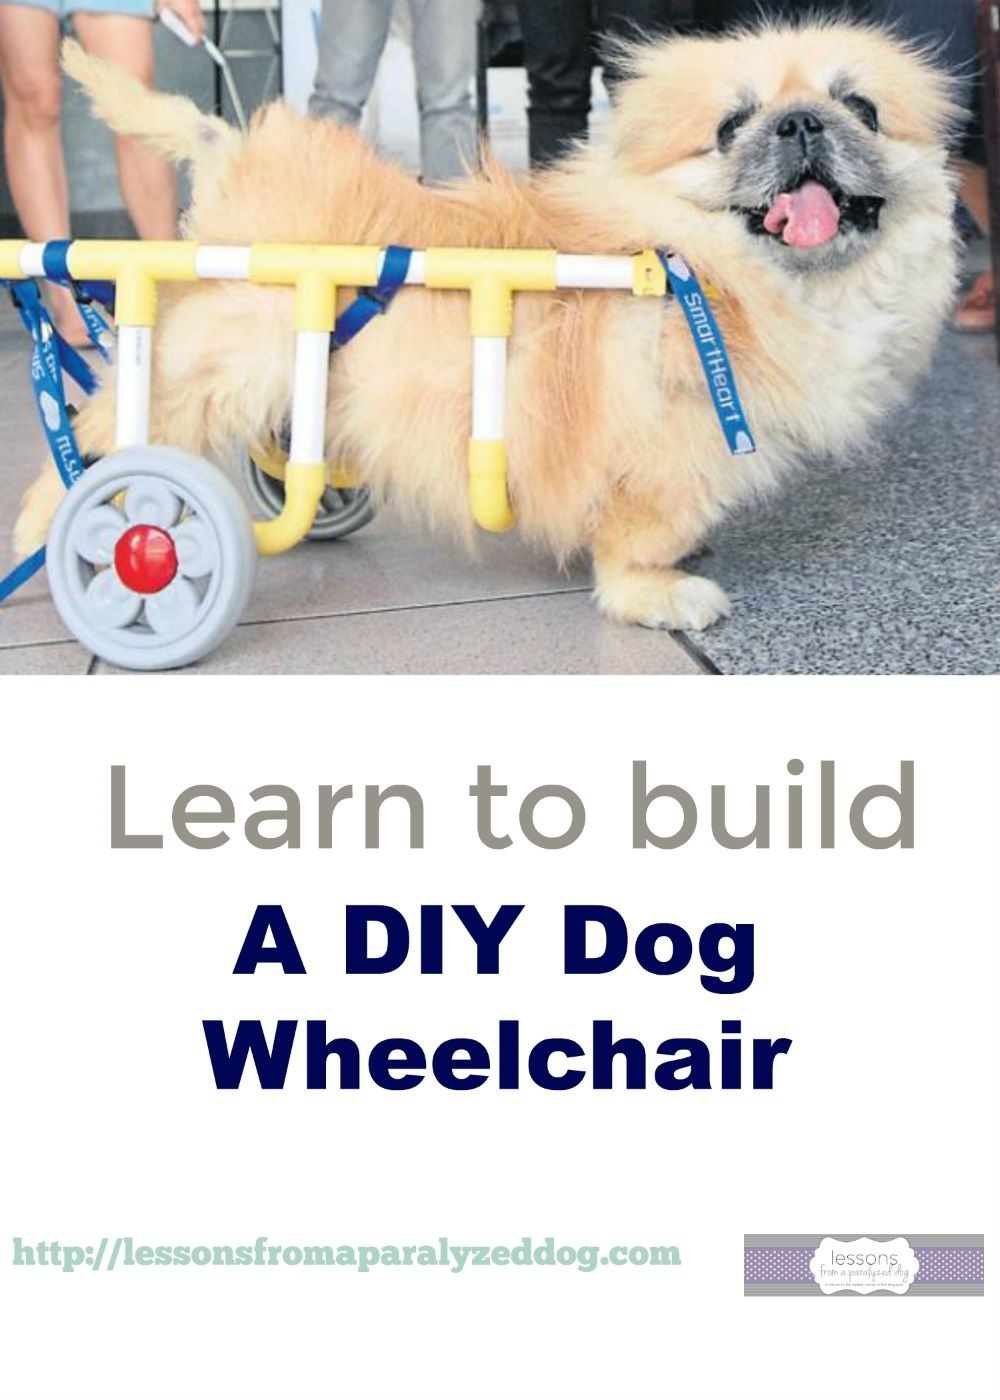 Diy build a dog wheelchair pinterest dog wheelchair dog and pet learn to build a sturdy inexpensive diy dog wheelchair solutioingenieria Gallery